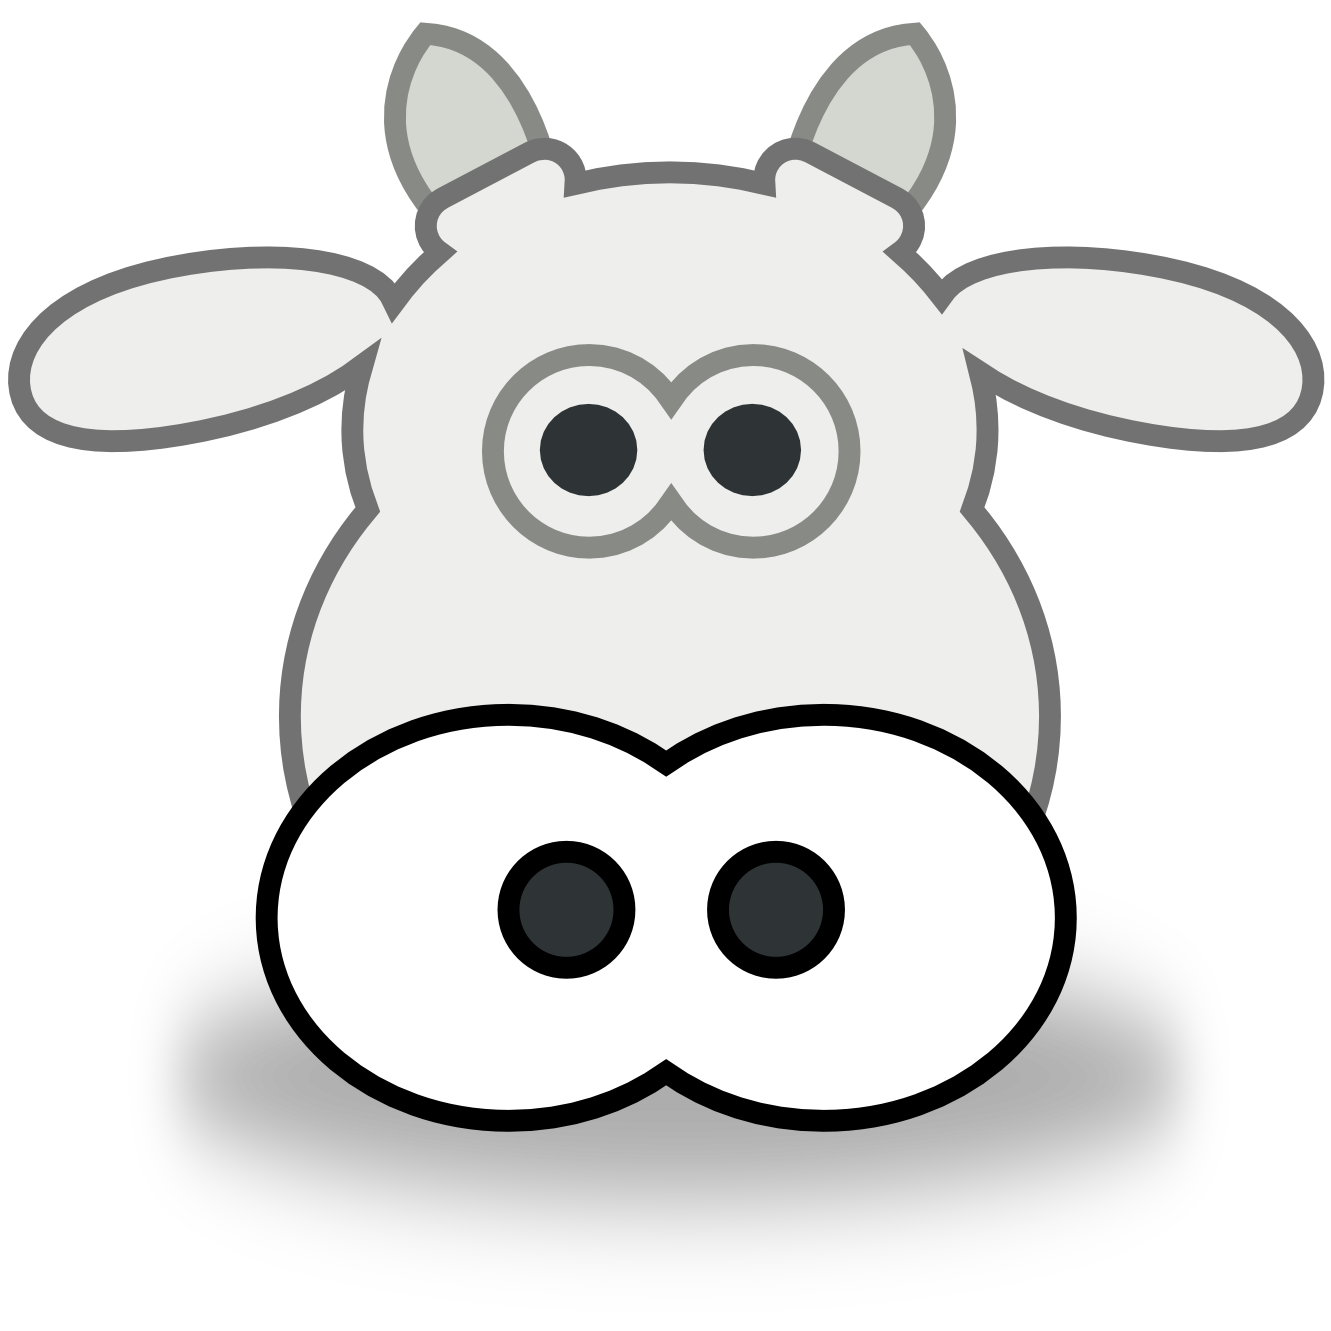 Free Cow Face Cartoon Download Free Clip Art Free Clip Art On